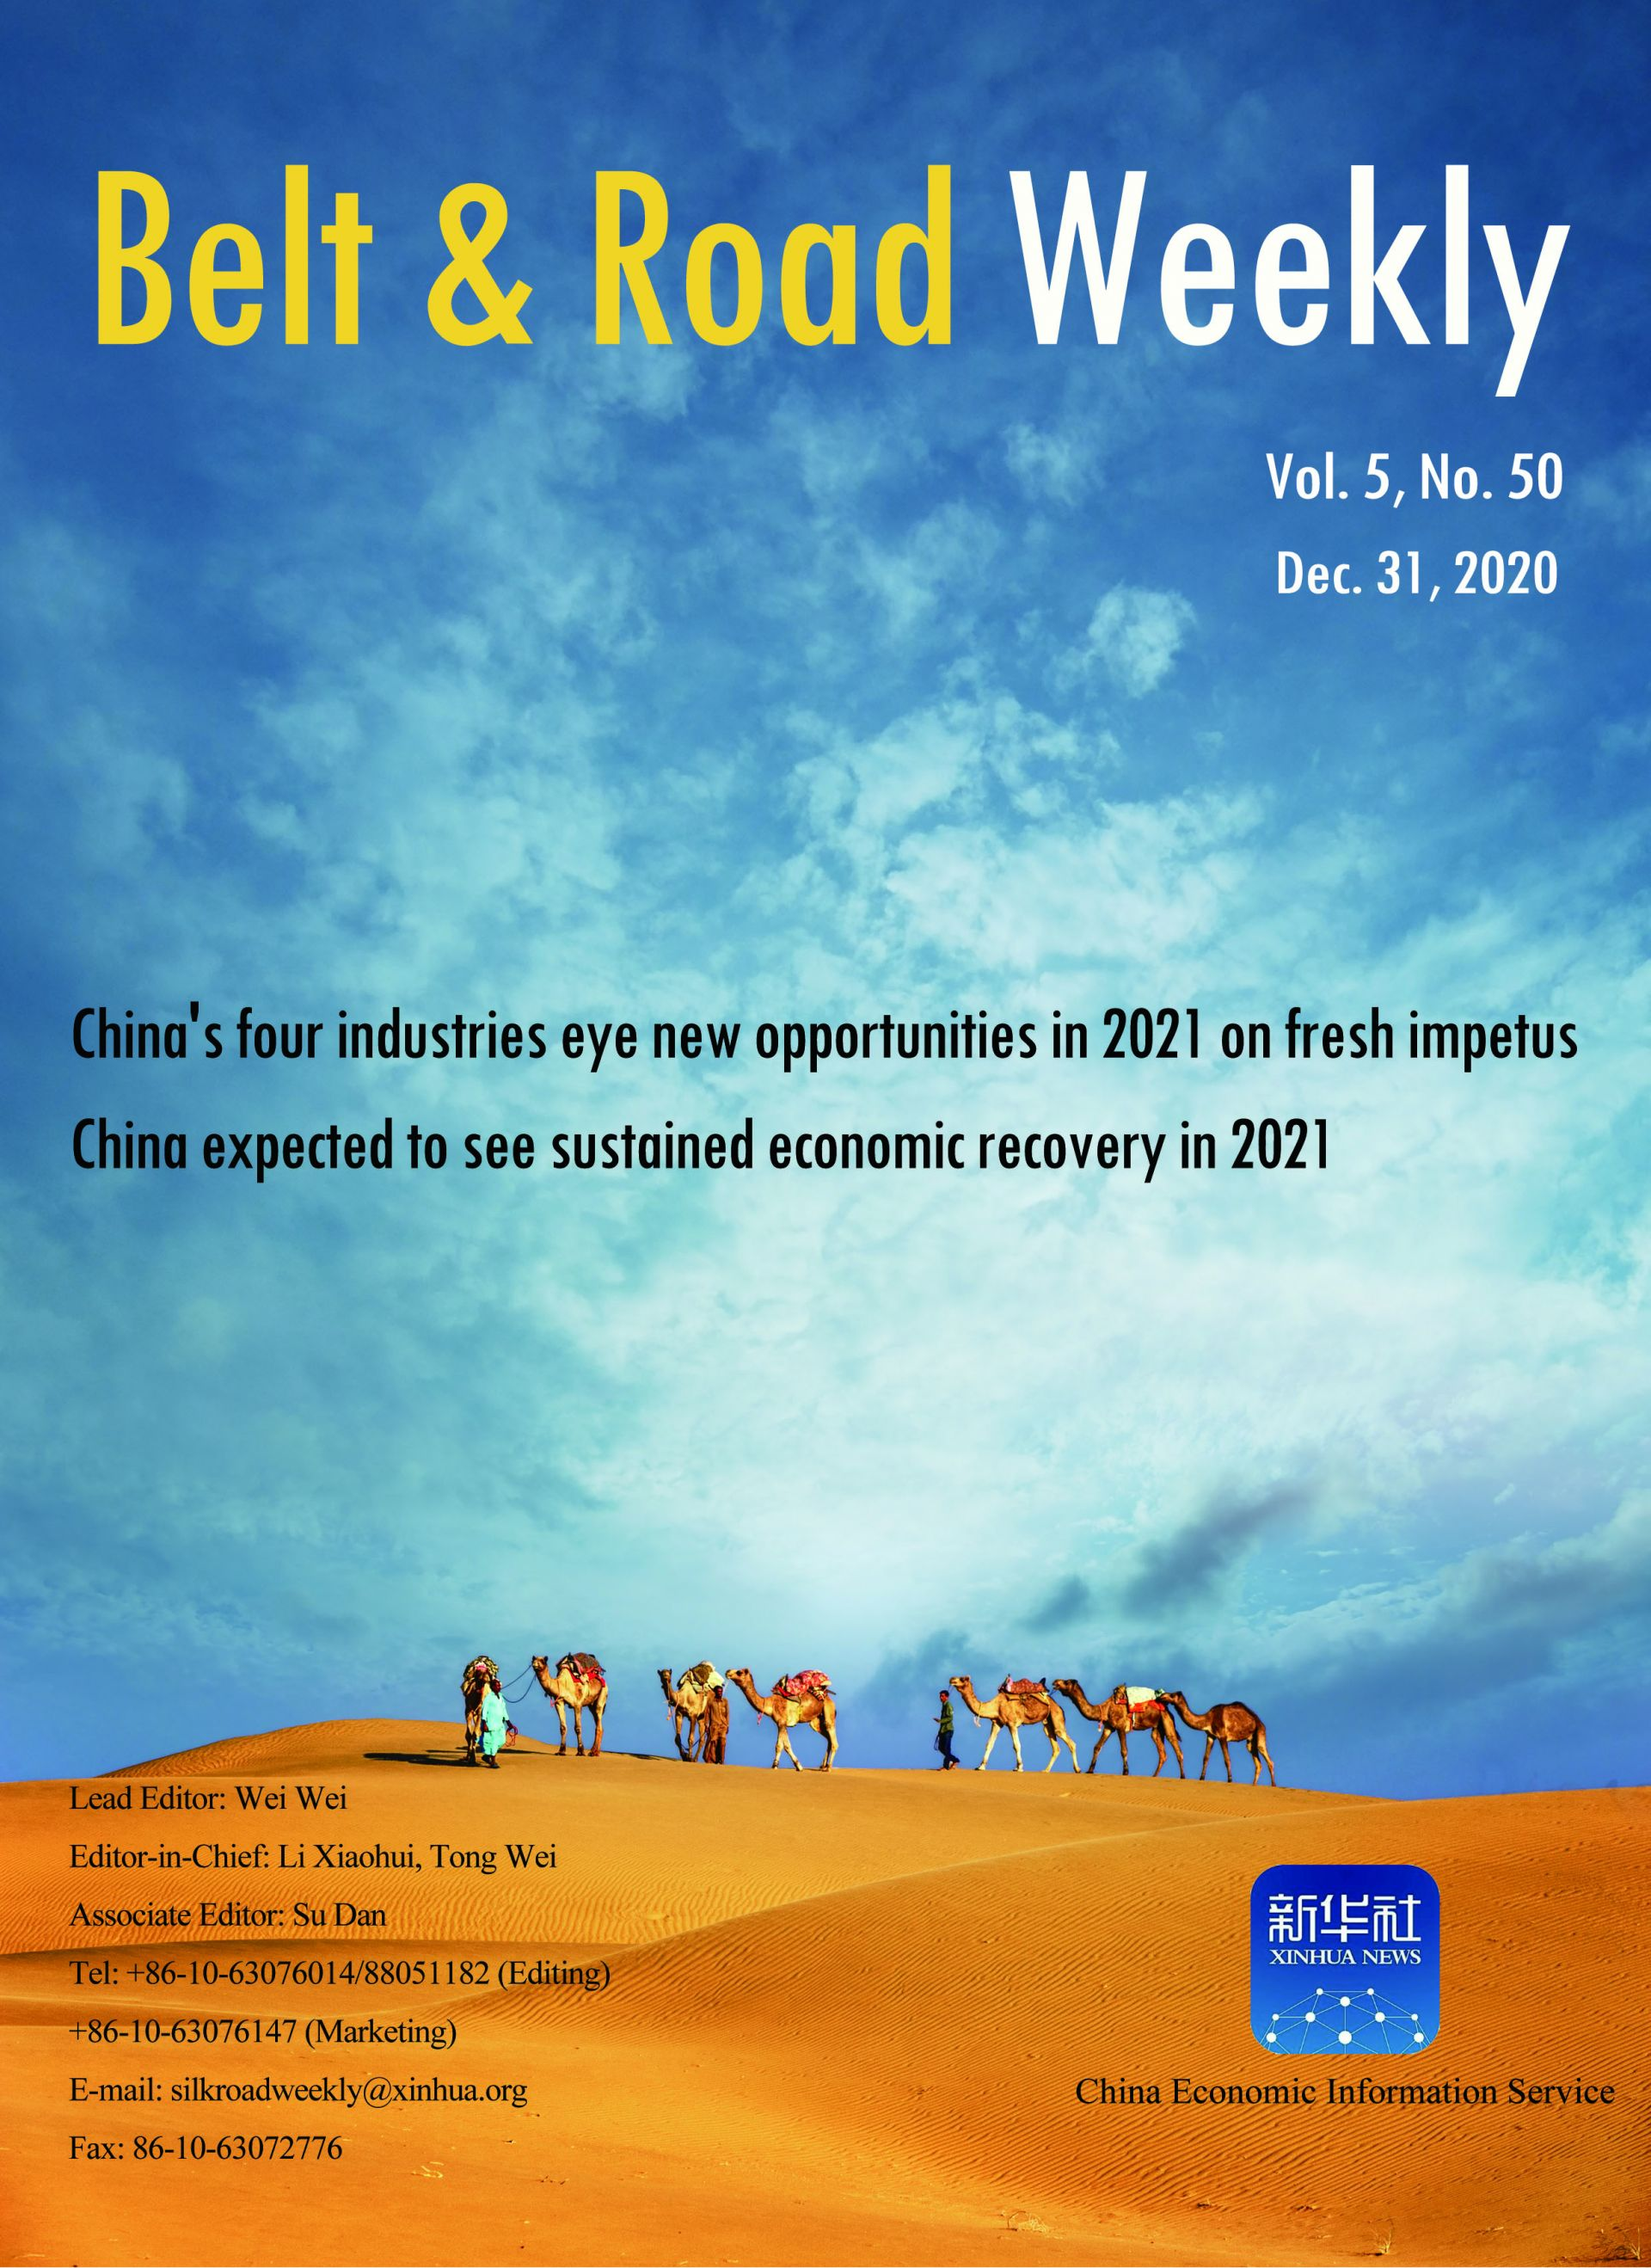 Belt and Road Weekly Vol. 5 No. 50